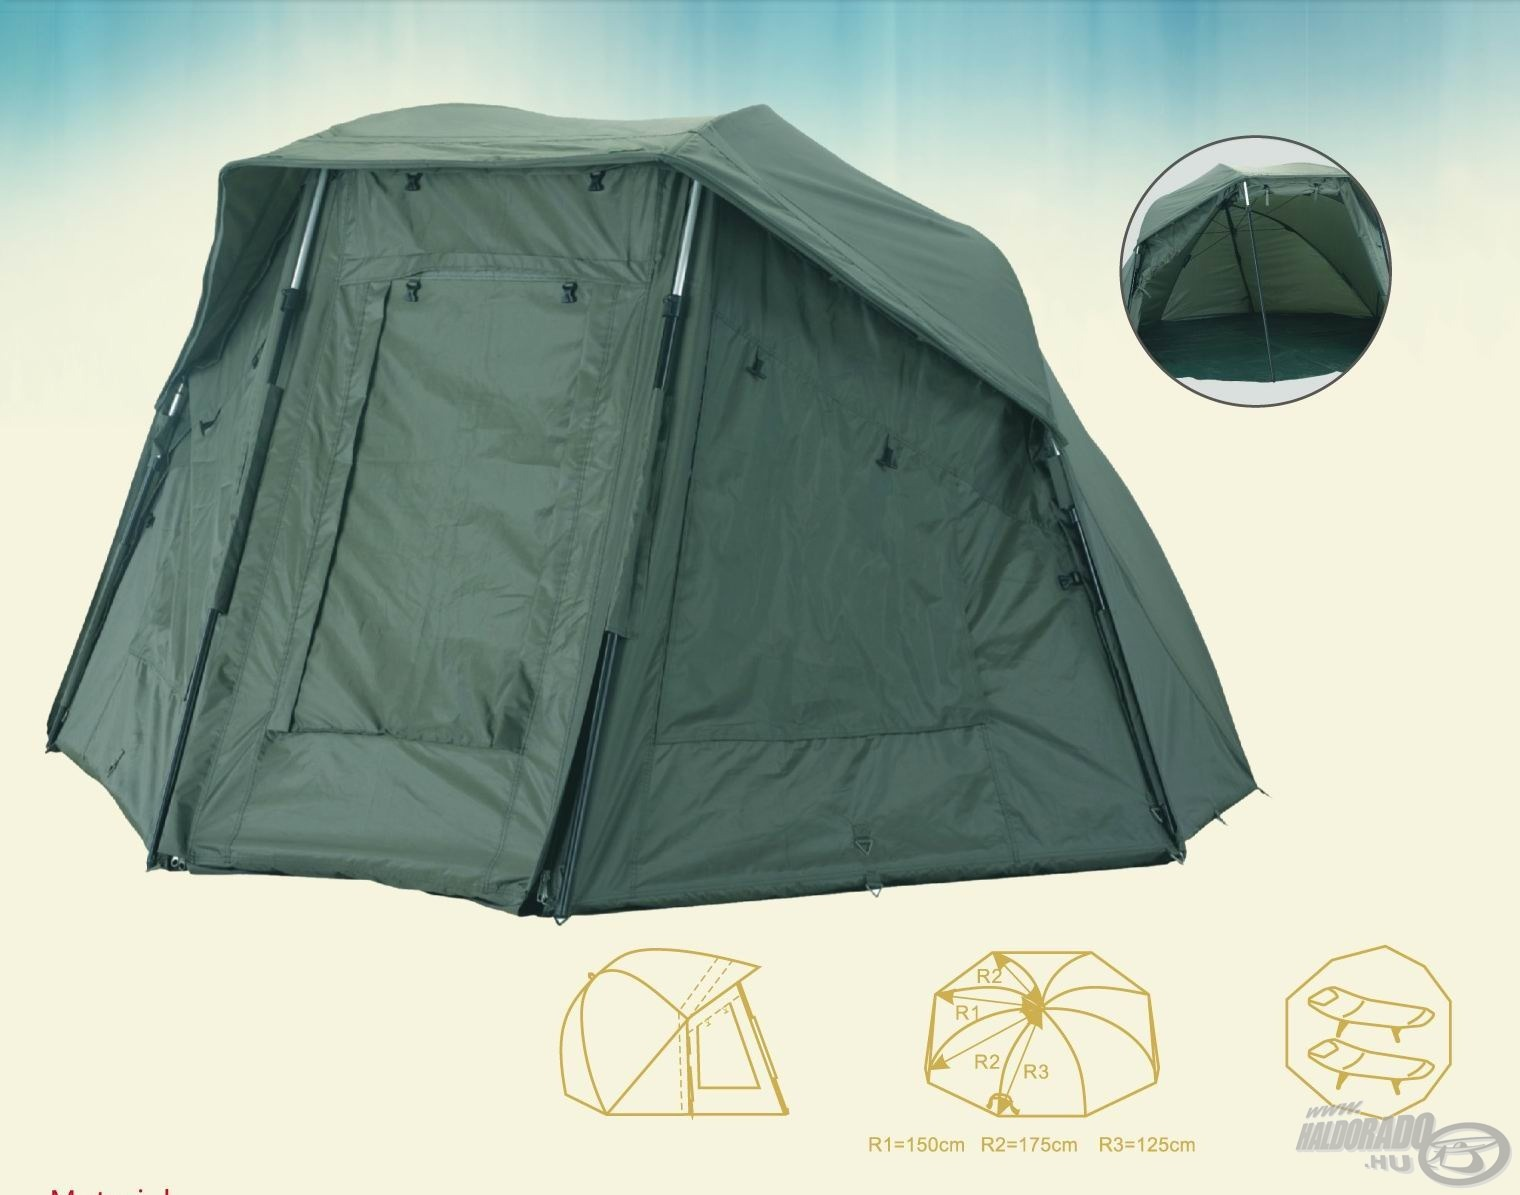 CARP ACADEMY Oval Dome 41500Ft